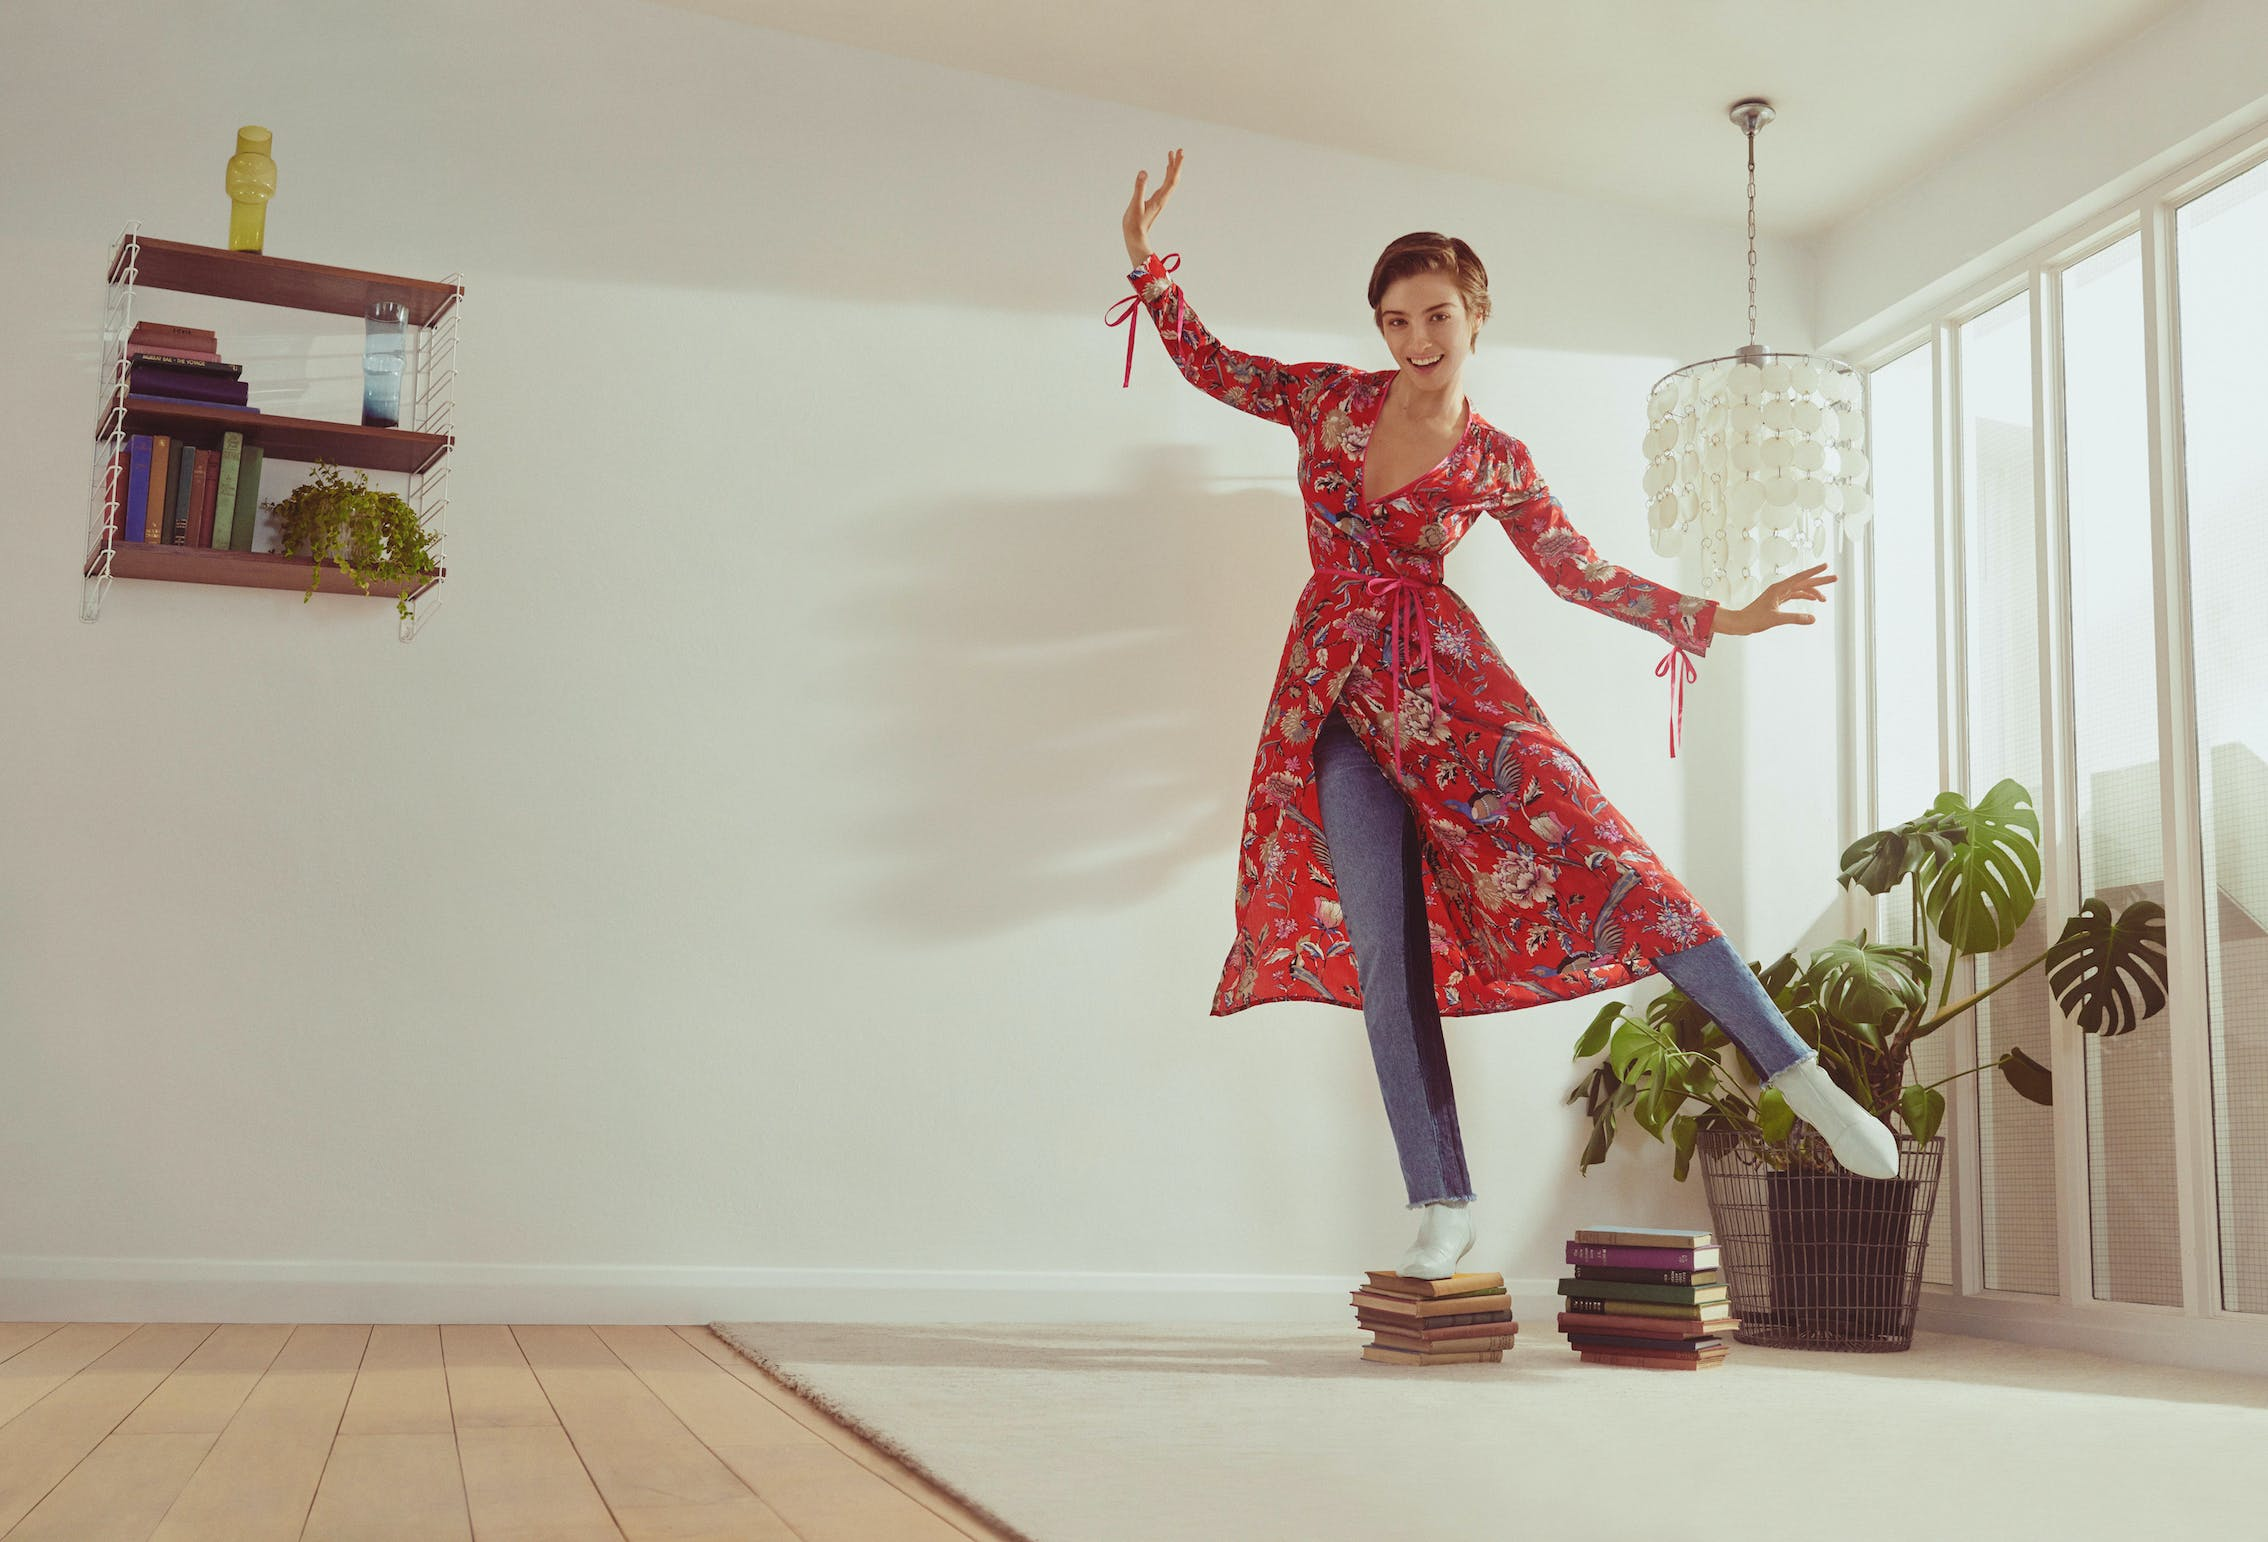 fashion marketing campaign Here, the most impactful fashion content marketing trends that build brand awareness, influence purchasing decisions, and retain loyal customers.